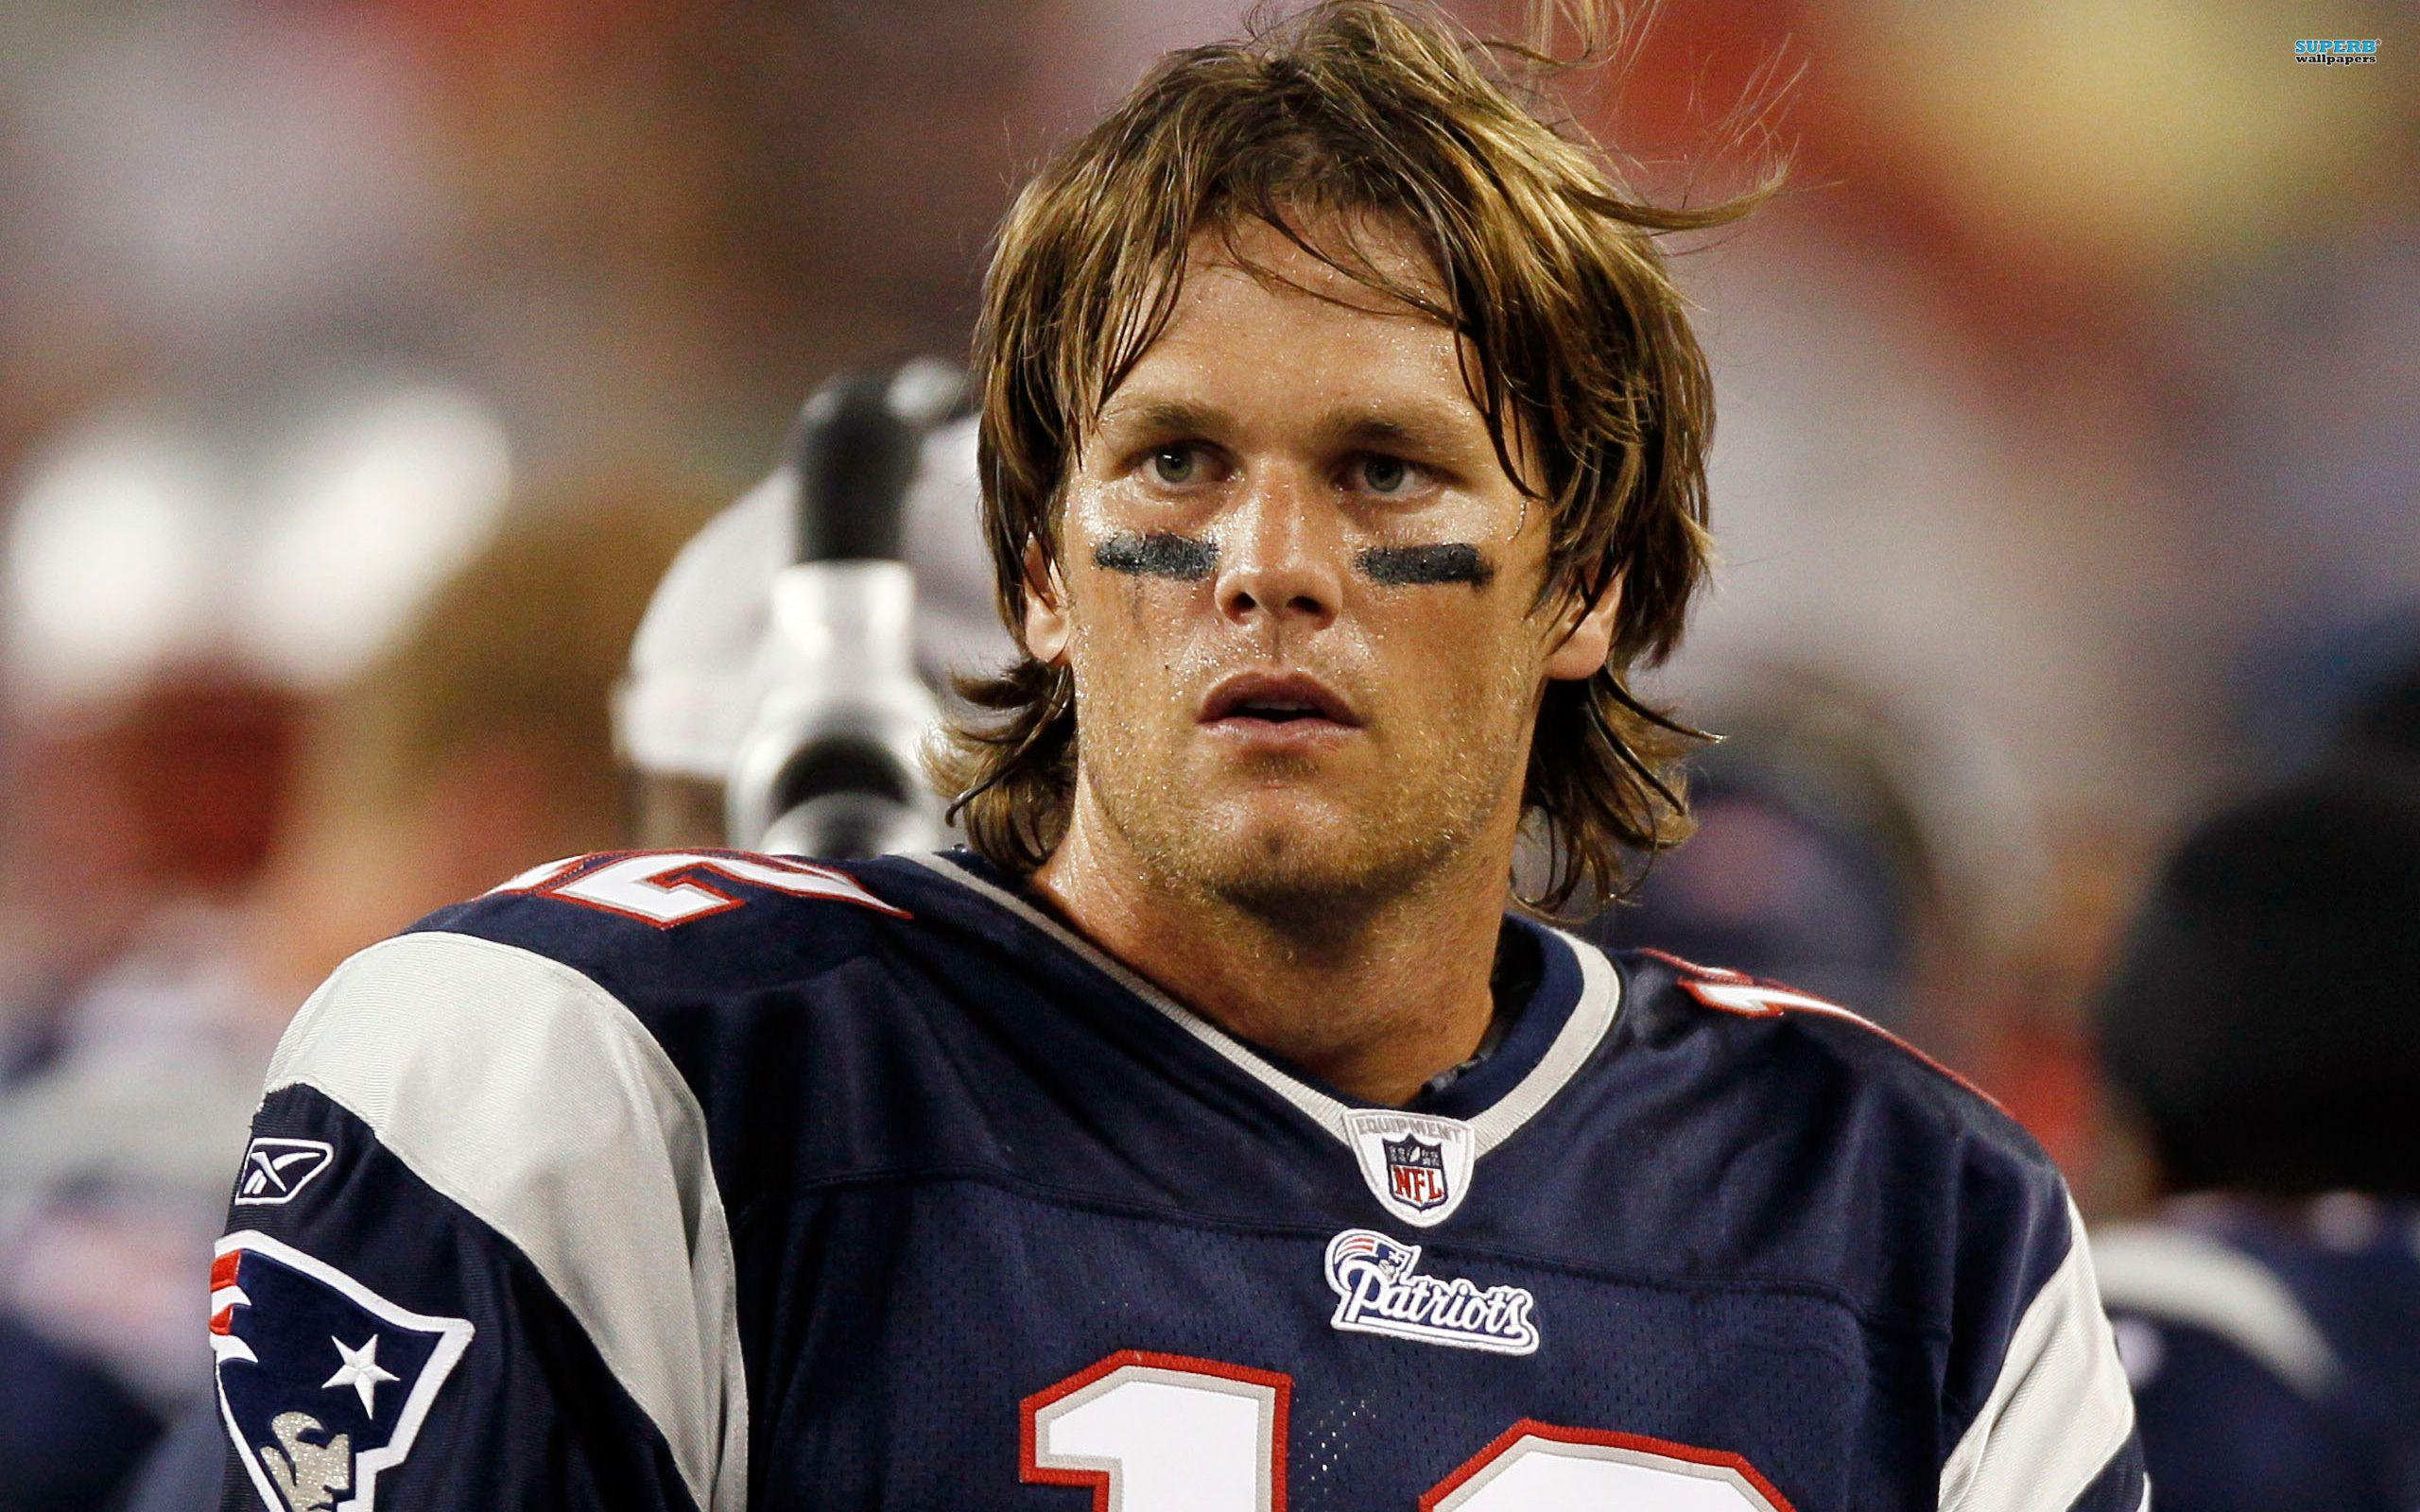 Tom Brady full name Thomas Edward Patrick Brady Jr is the fivetime time Super Bowl winning quarterback for the New England Patriots 2002 2004 2005